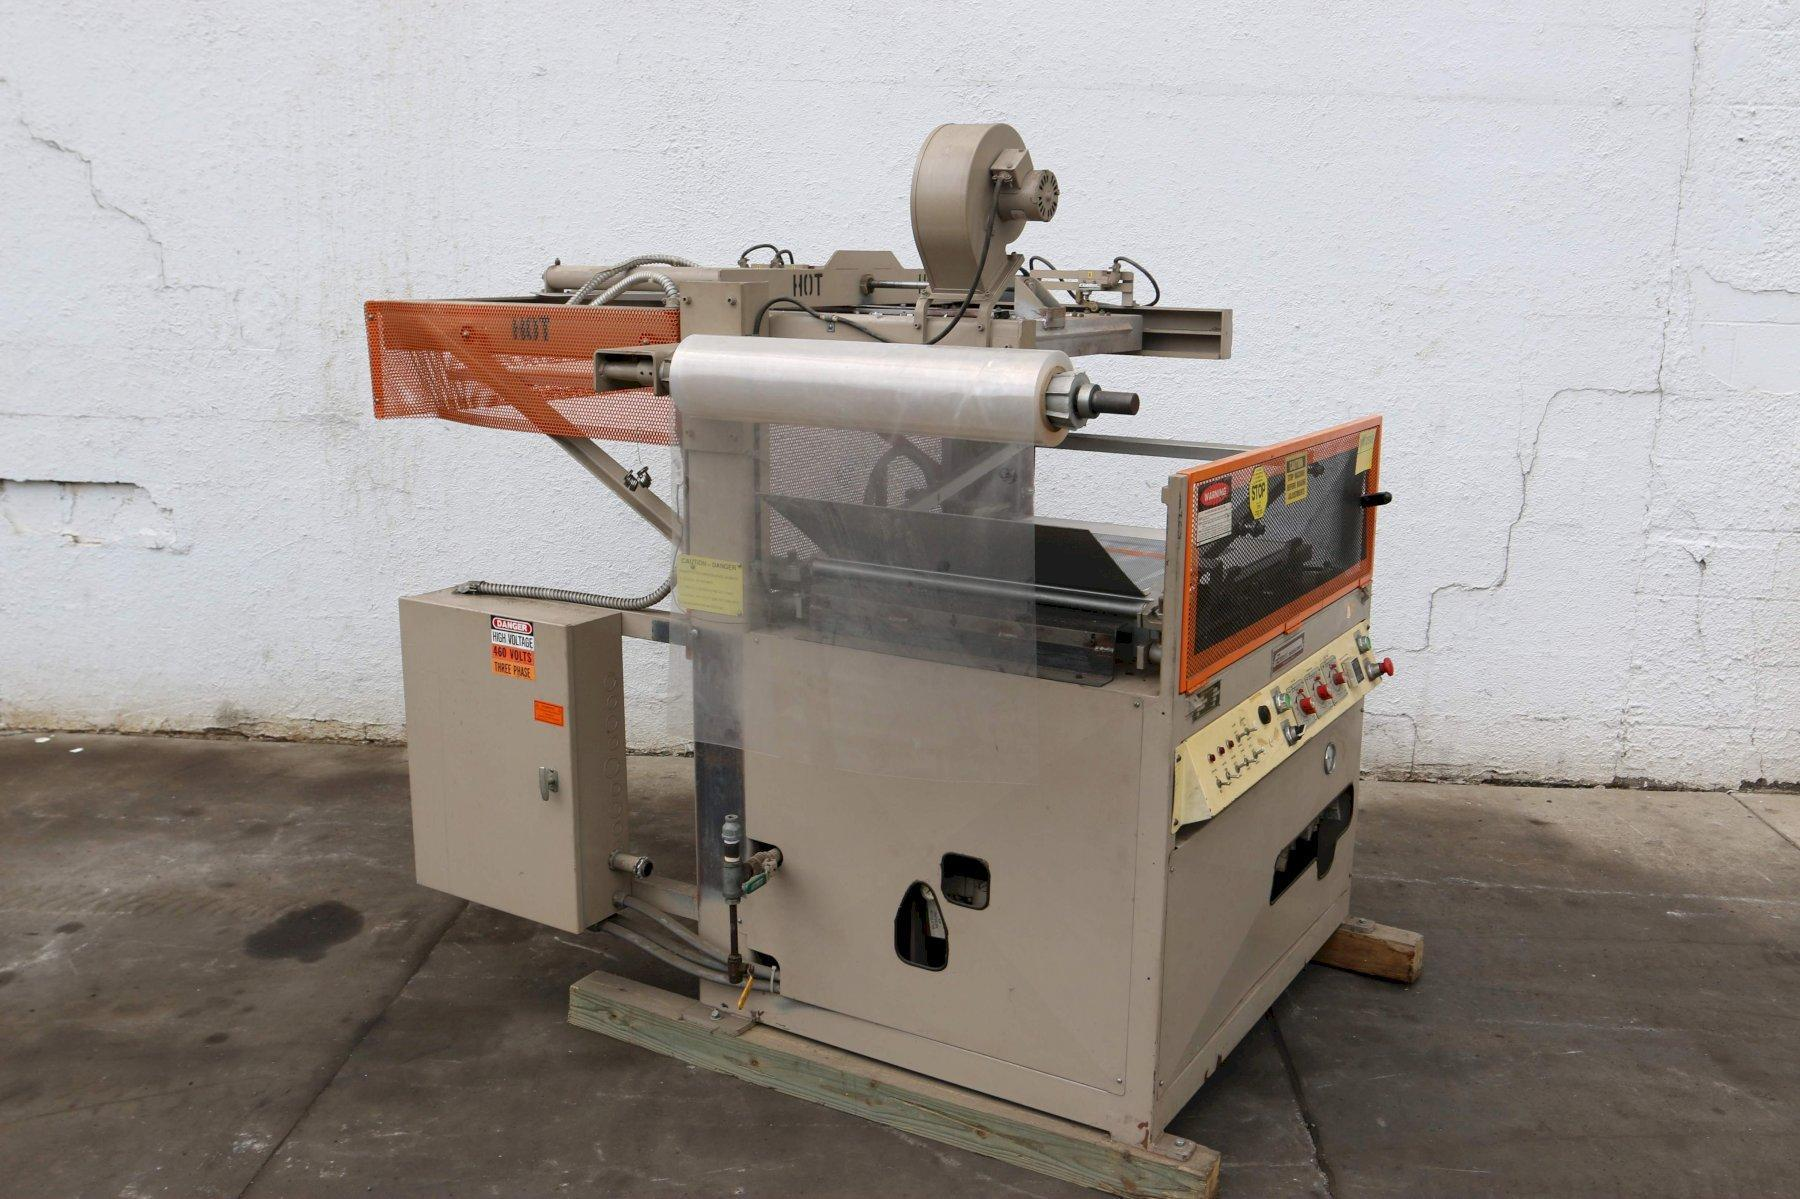 24' X 30' ZED INDUSTRIES BLISTER PACKAGING SEALER MACHINE: STOCK 70692